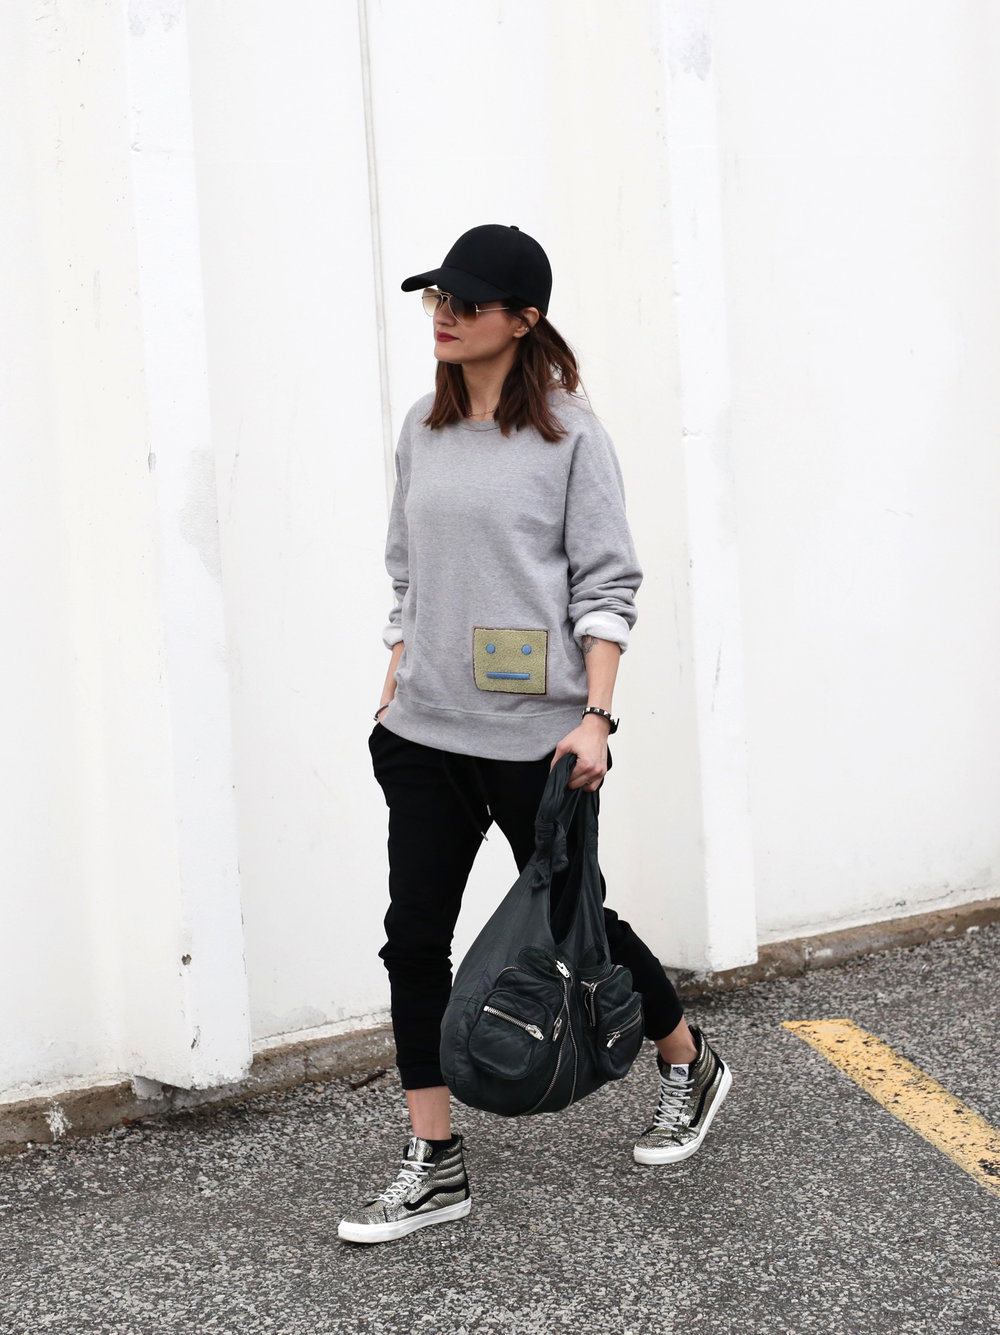 3 Ways To Rock Athleisure Wear - Leather Jacket, Acne Sweater, Alexander Wang Donna bag, metallic Vans sneakers_7641.JPG